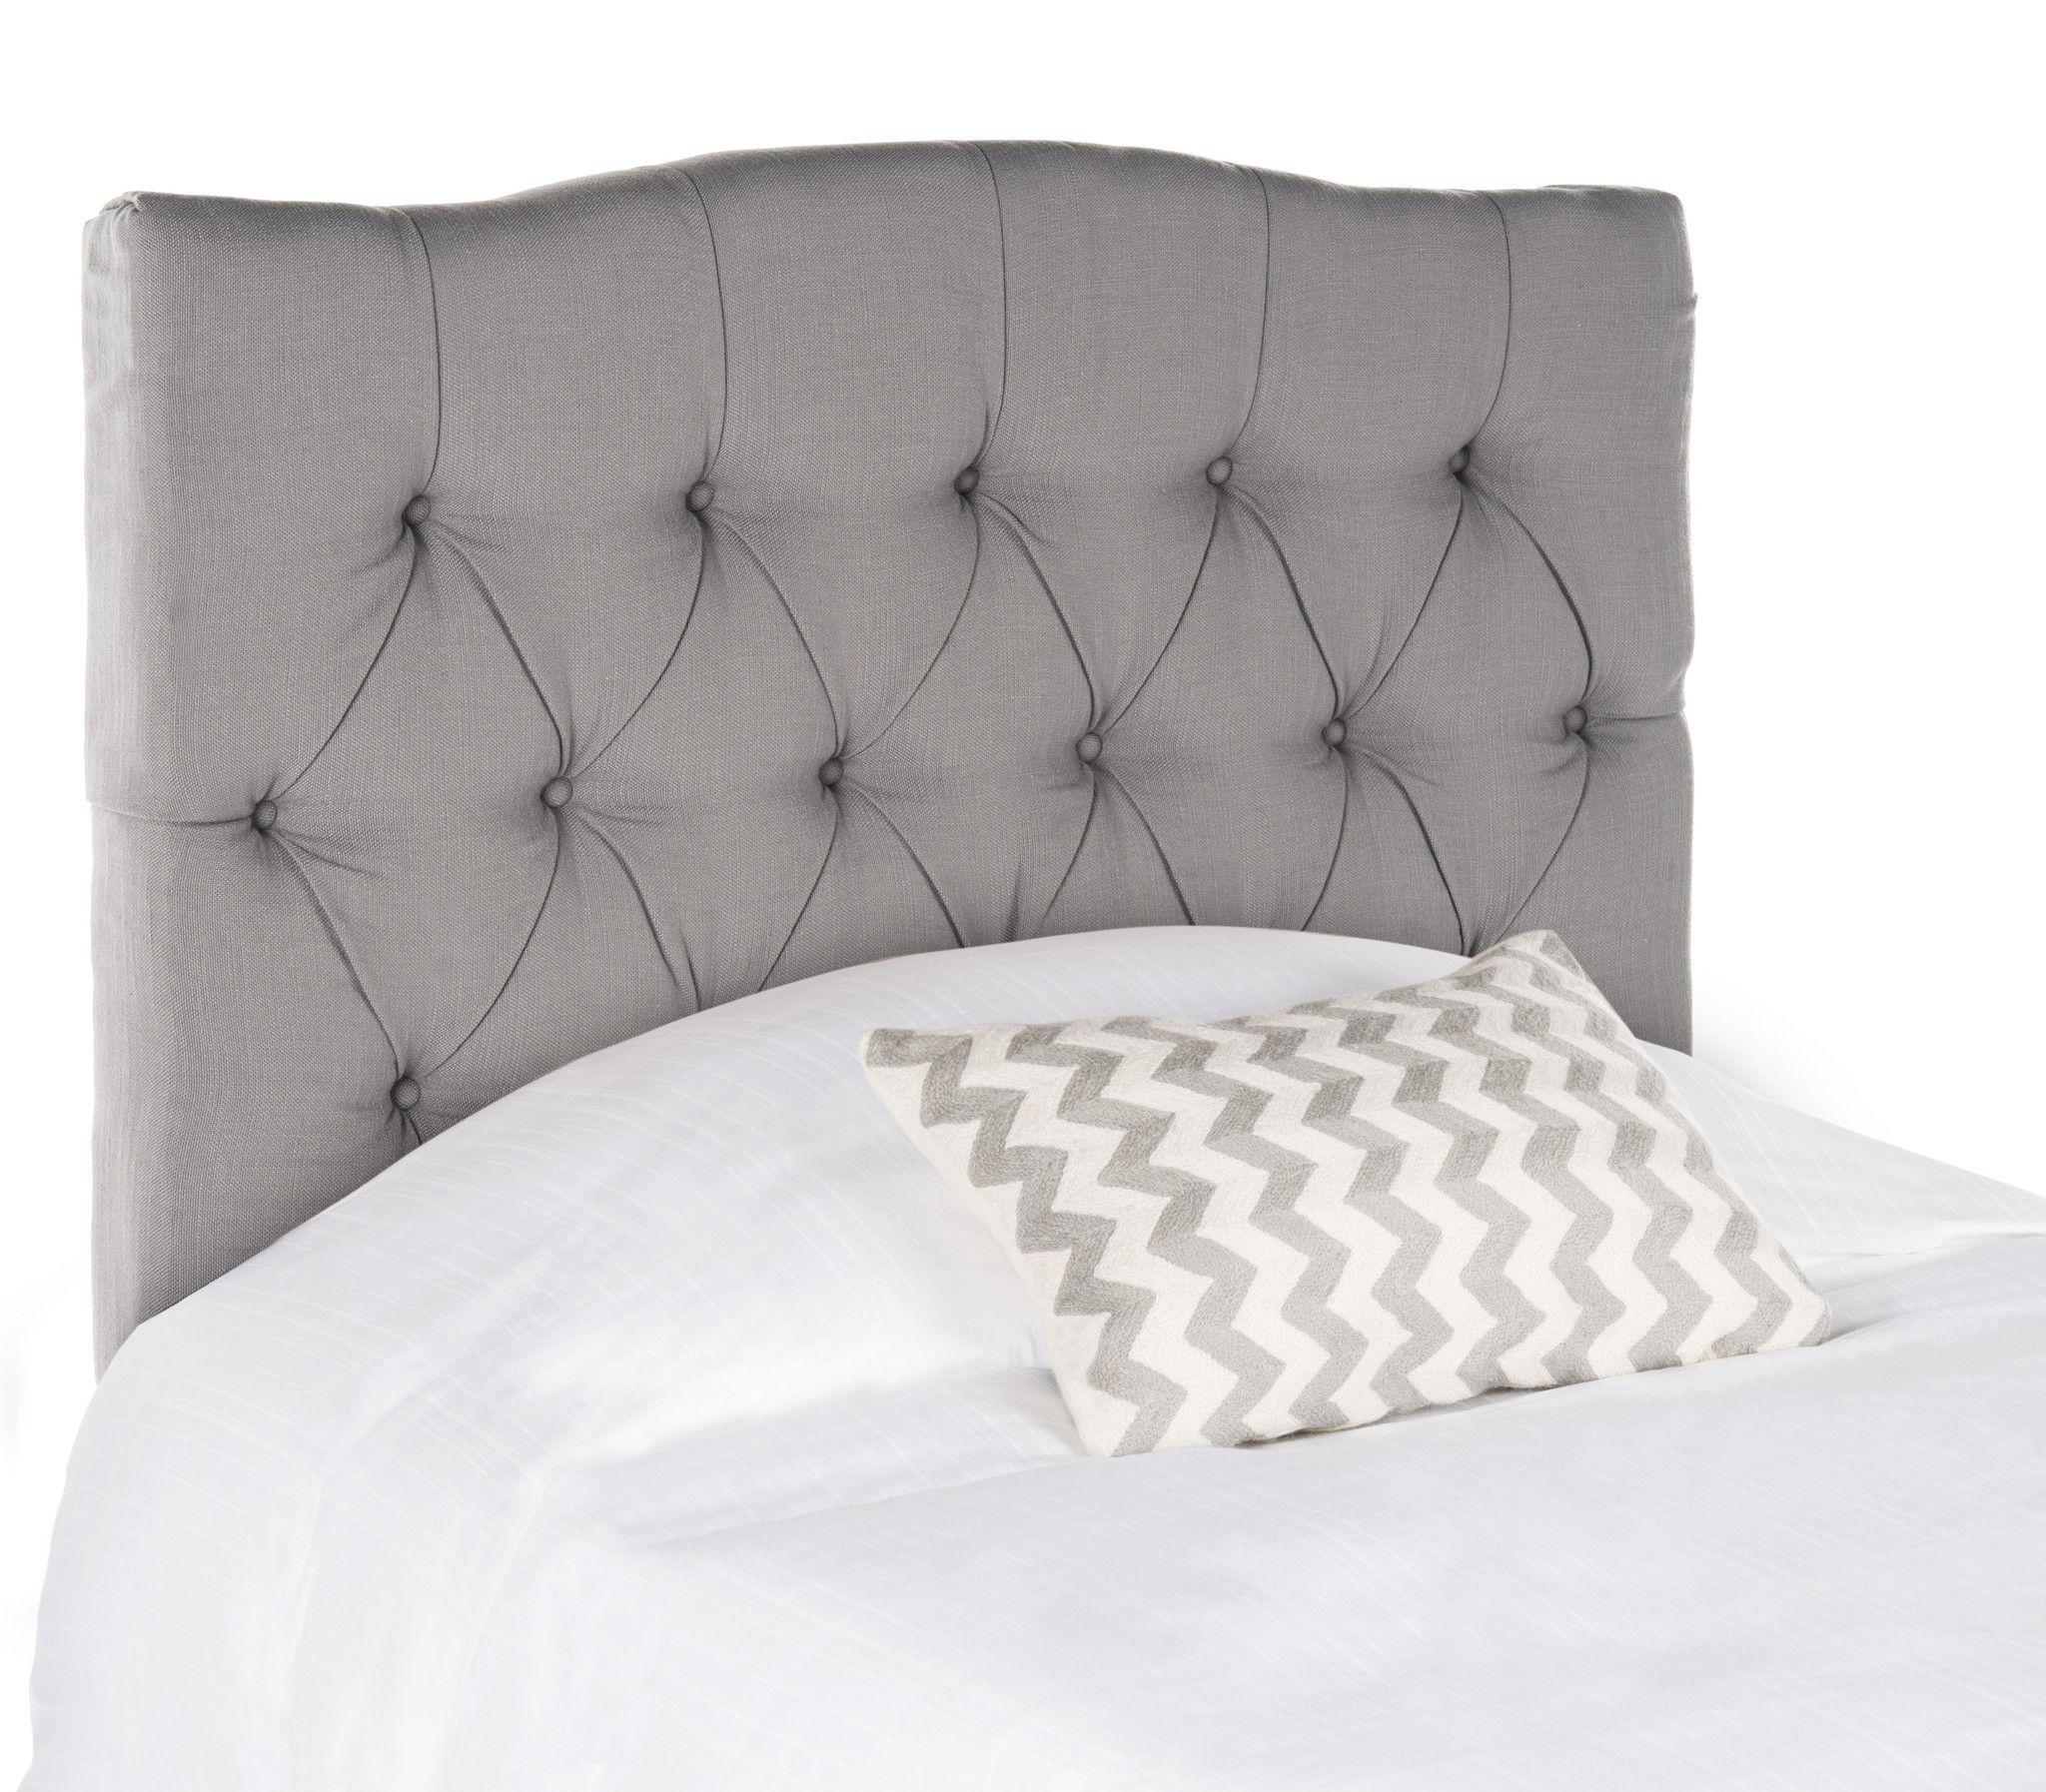 Axel Arctic Grey Tufted Headboard Twin Tufted Upholstered Headboard Grey Tufted Headboard Bedroom Headboard